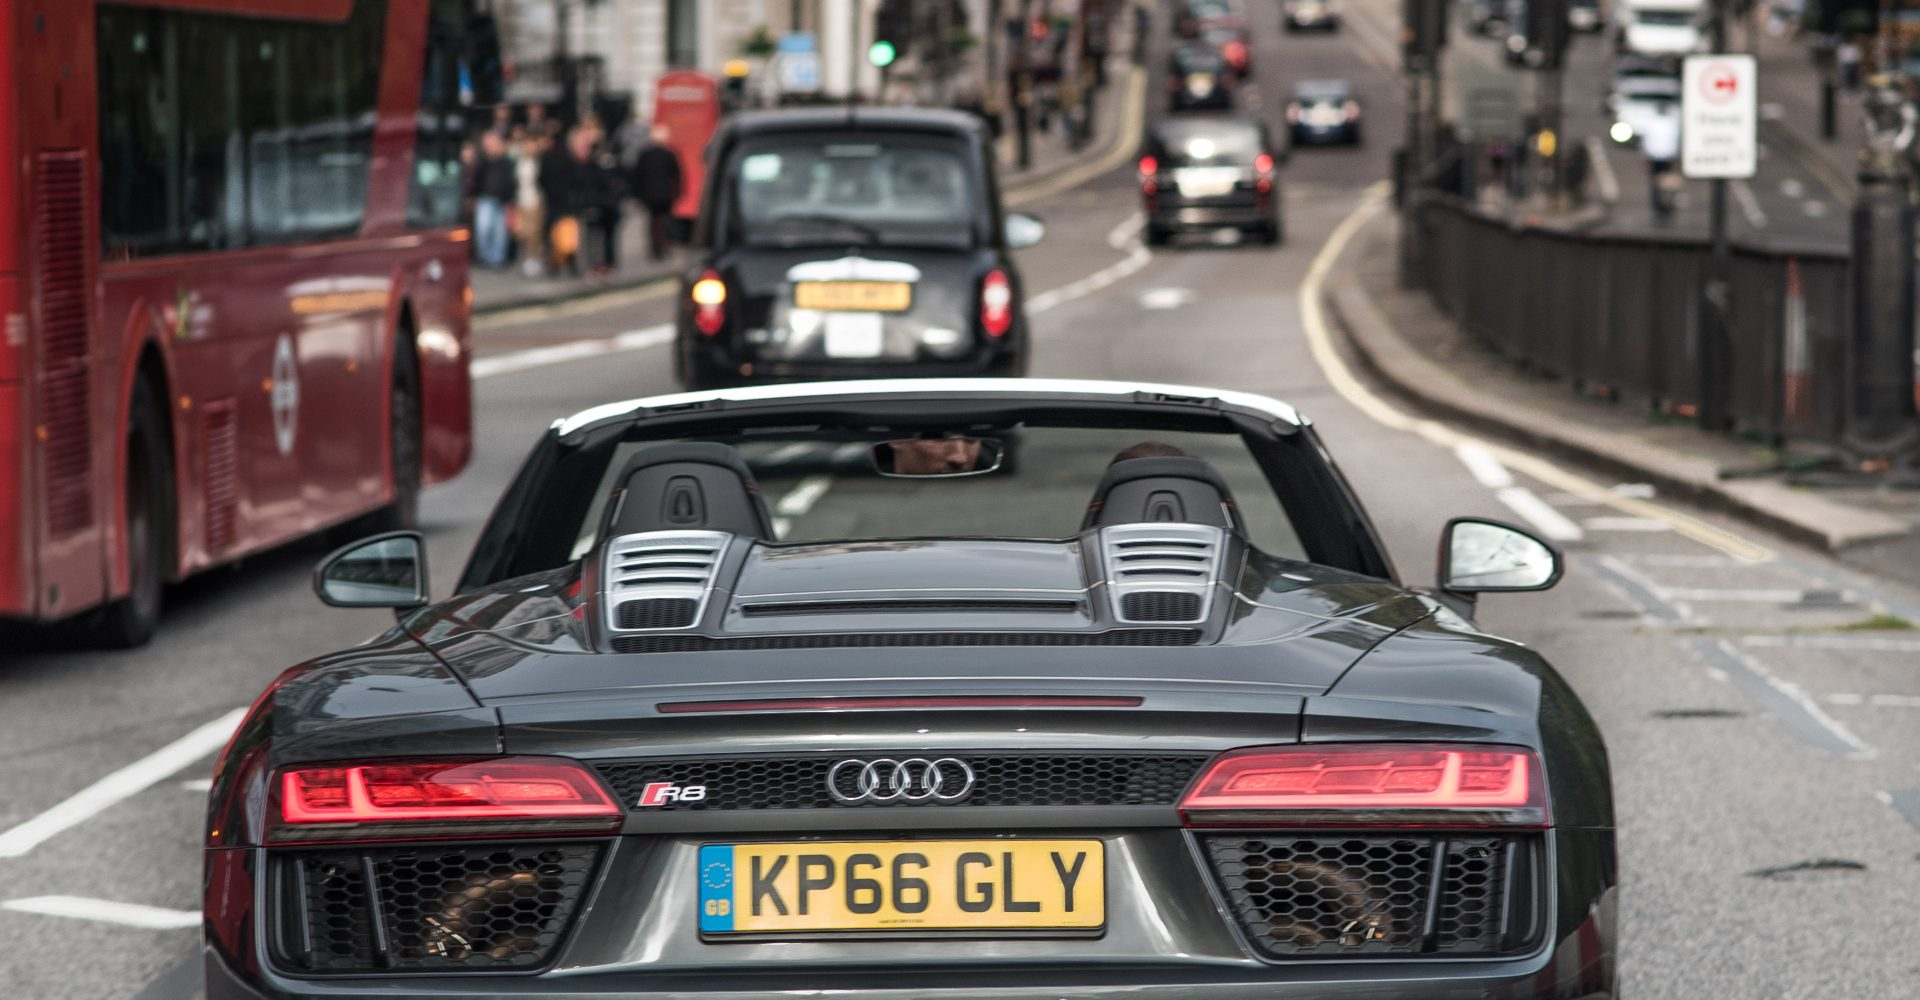 We Drove A New R8 Spyder Into Supercar-Spotting Central To See Who Papped Us